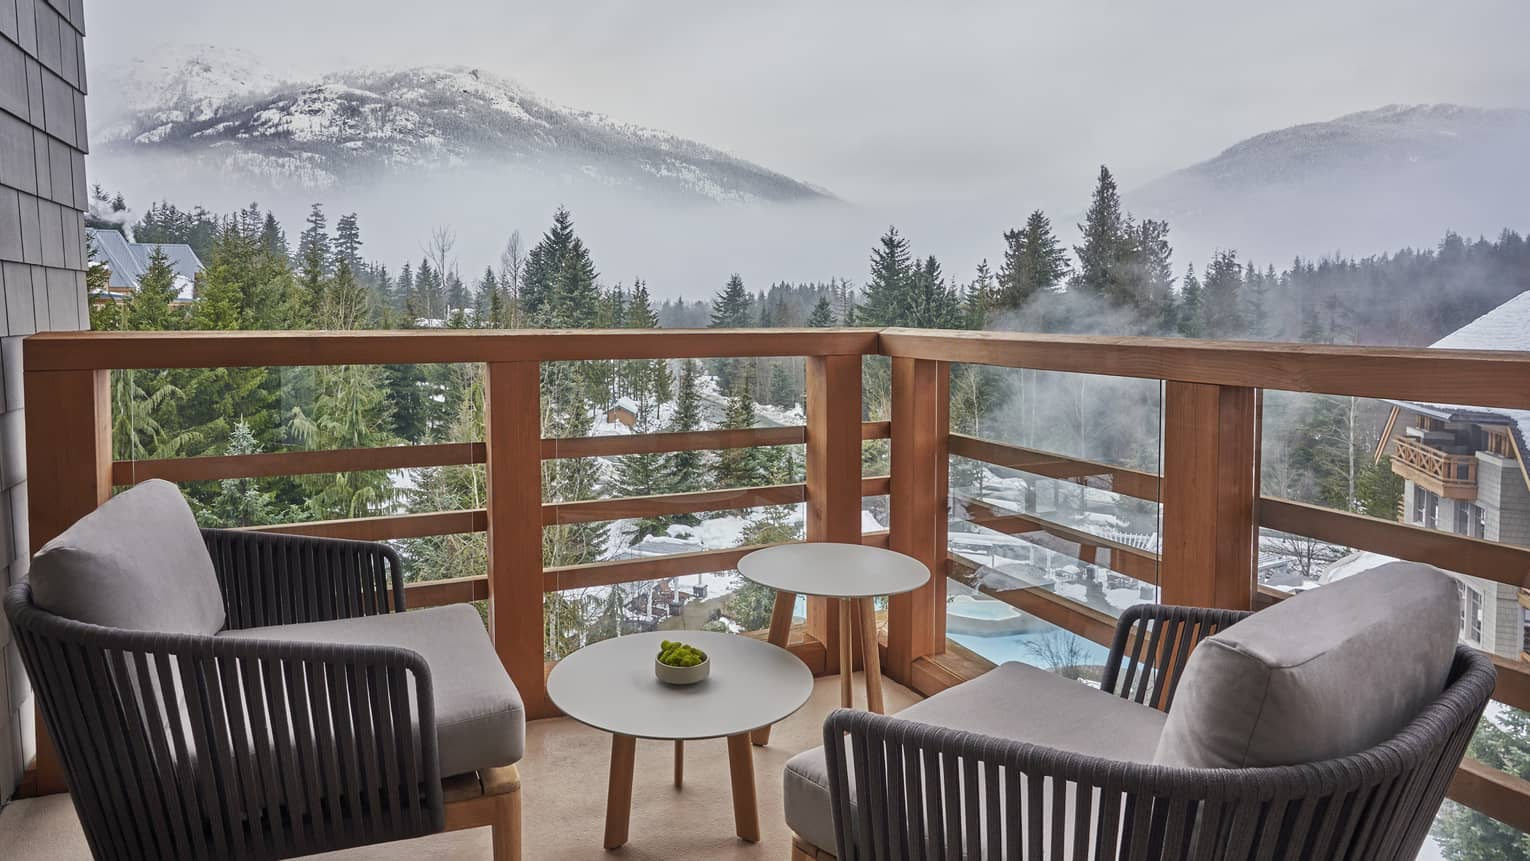 Balcony with two arm chairs and small tables, overlooking Whistler mountains